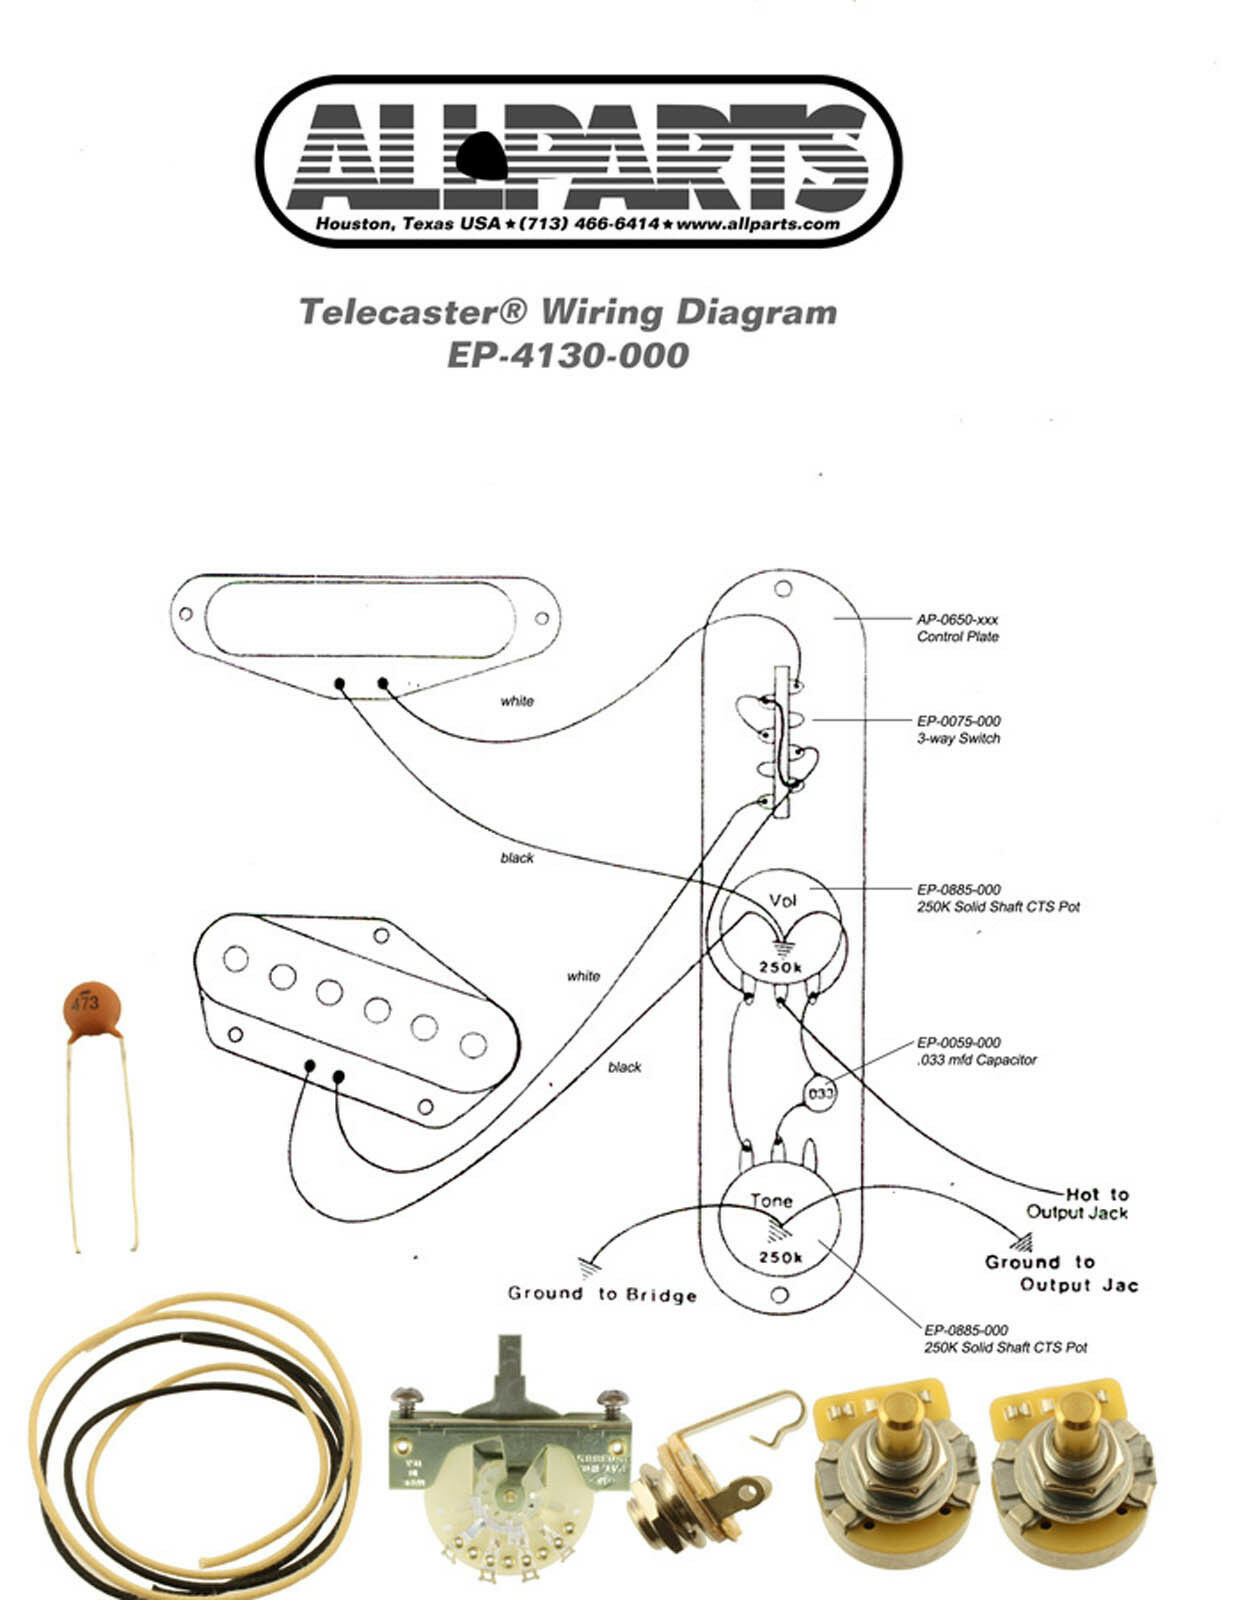 Wiring Kit Fender Telecaster Tele Complete With Schematic Diagram 3 Way Usa Parts 1 Of 1only 2 Available